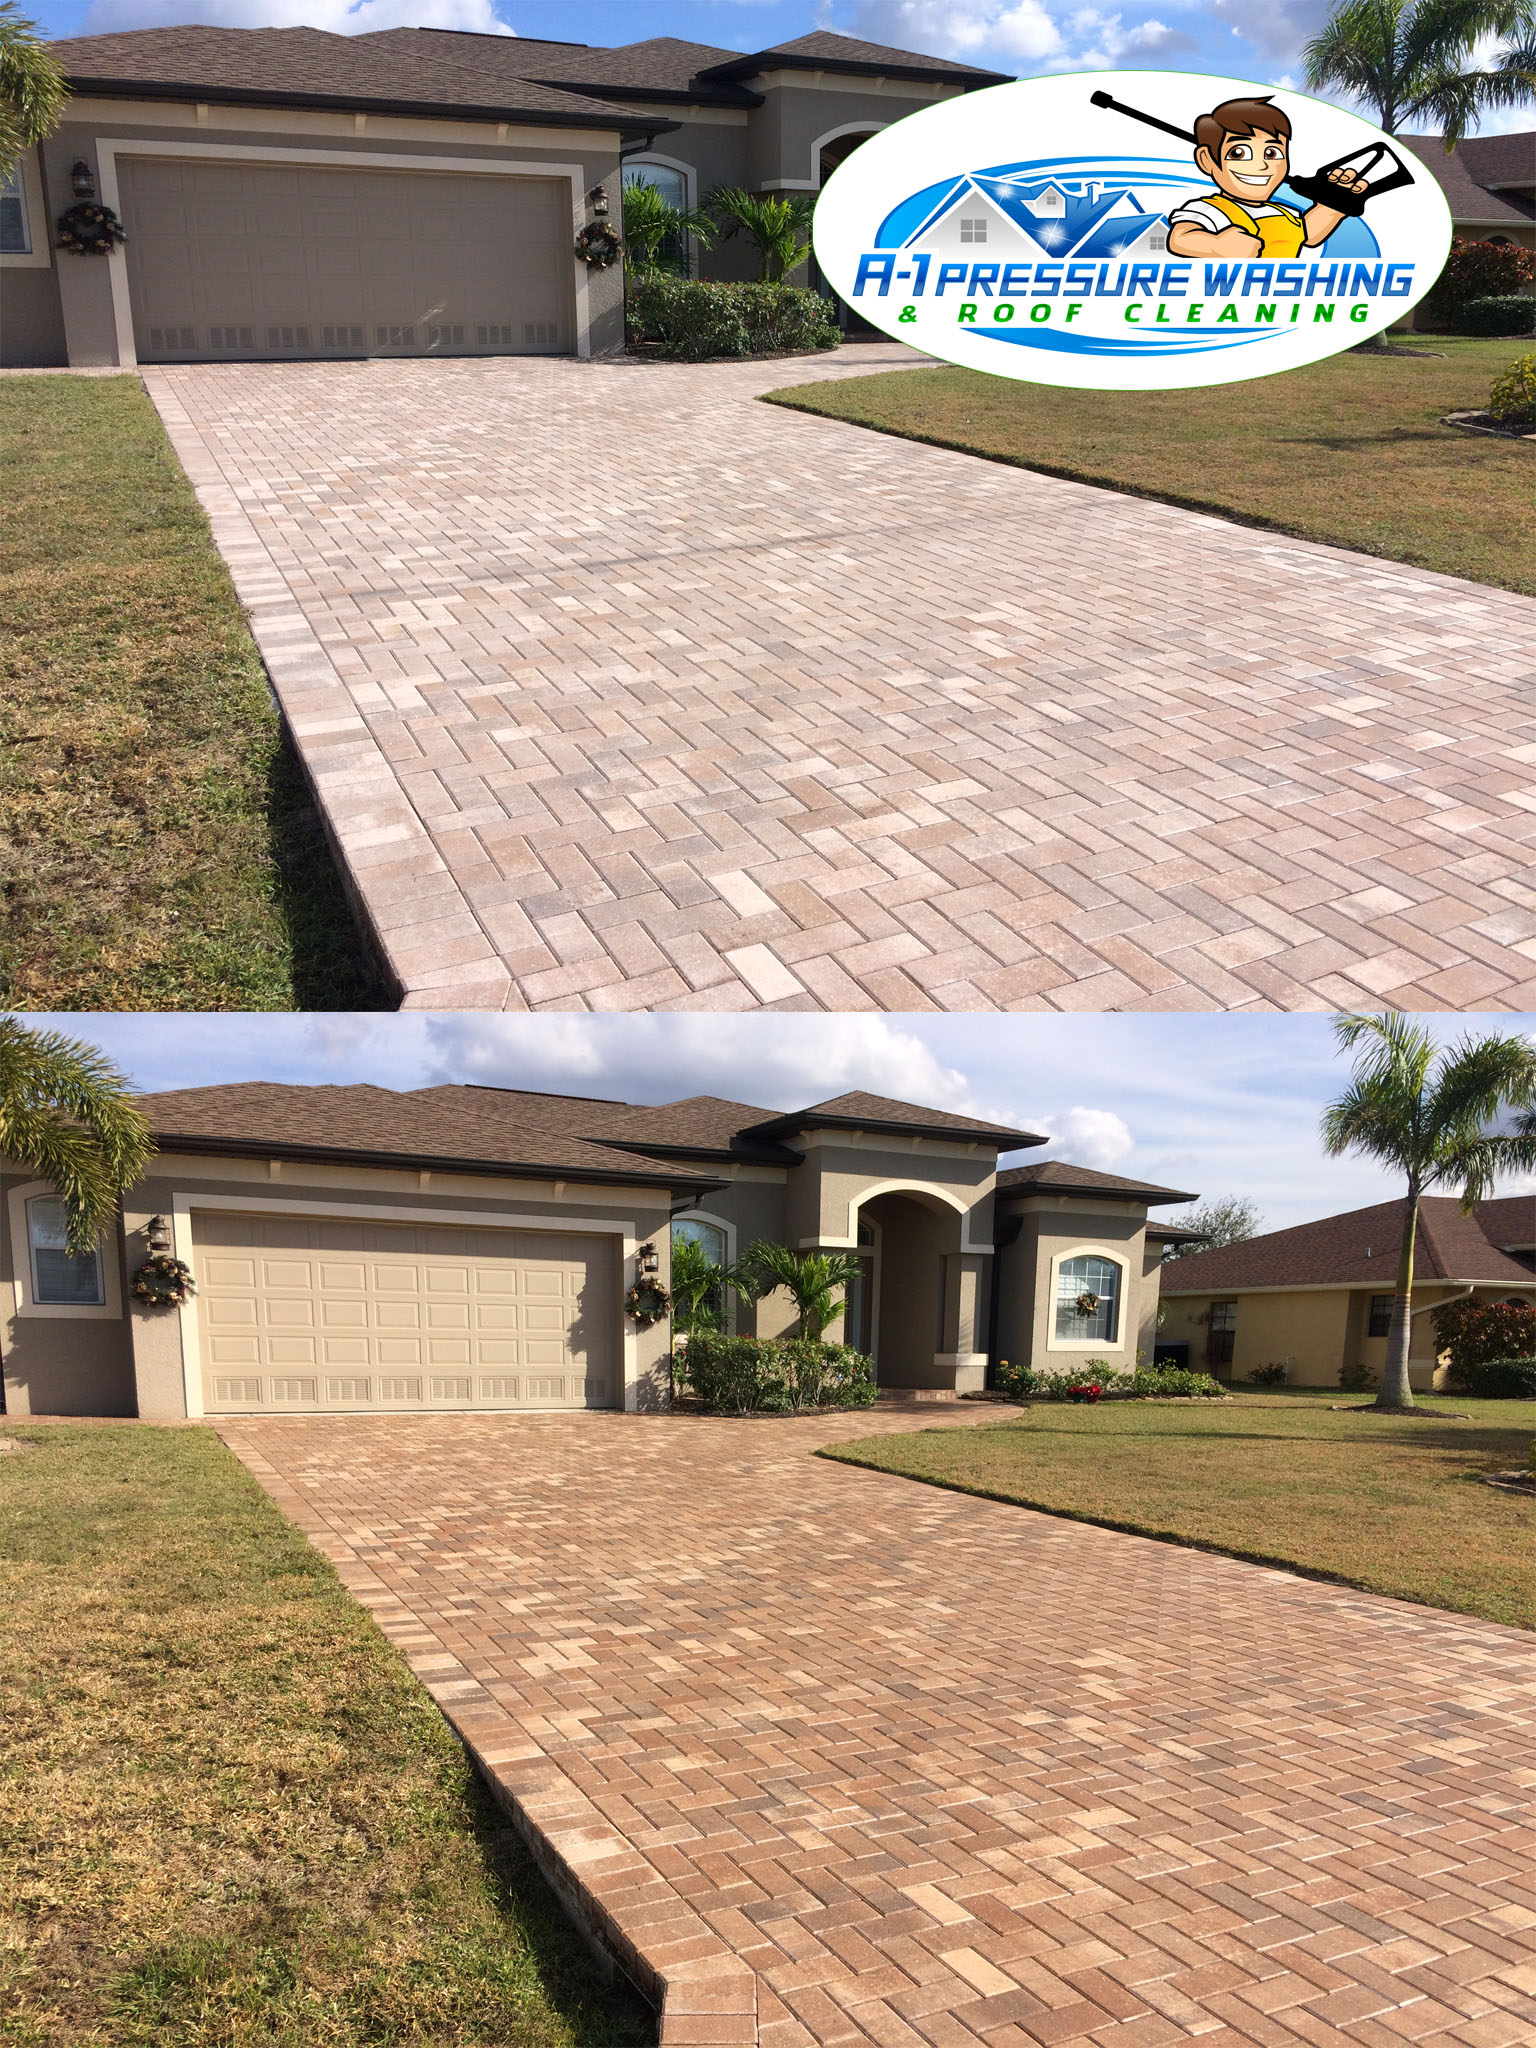 A 1 Pressure Washing Amp Roof Cleaning Brick Paver Sealing